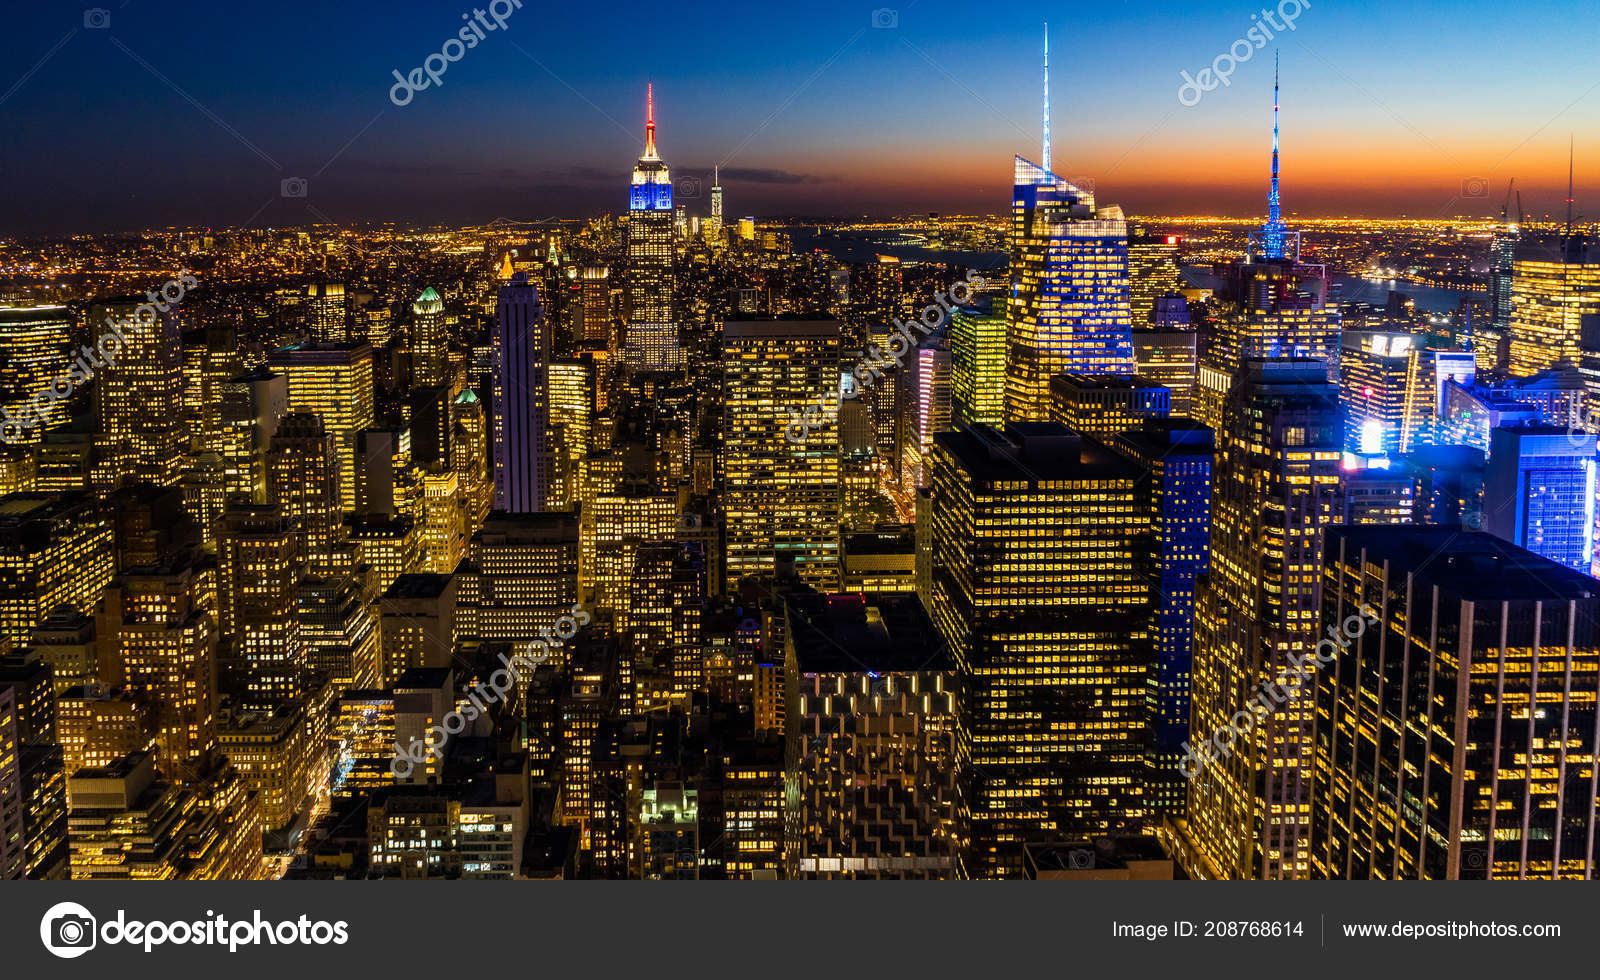 New York City Computer Wallpaper New York Skyline Manhatten Cityscape Empire State Building From Top Of The Rock Sunset Stock Editorial Photo C Mathias Berlin 208768614